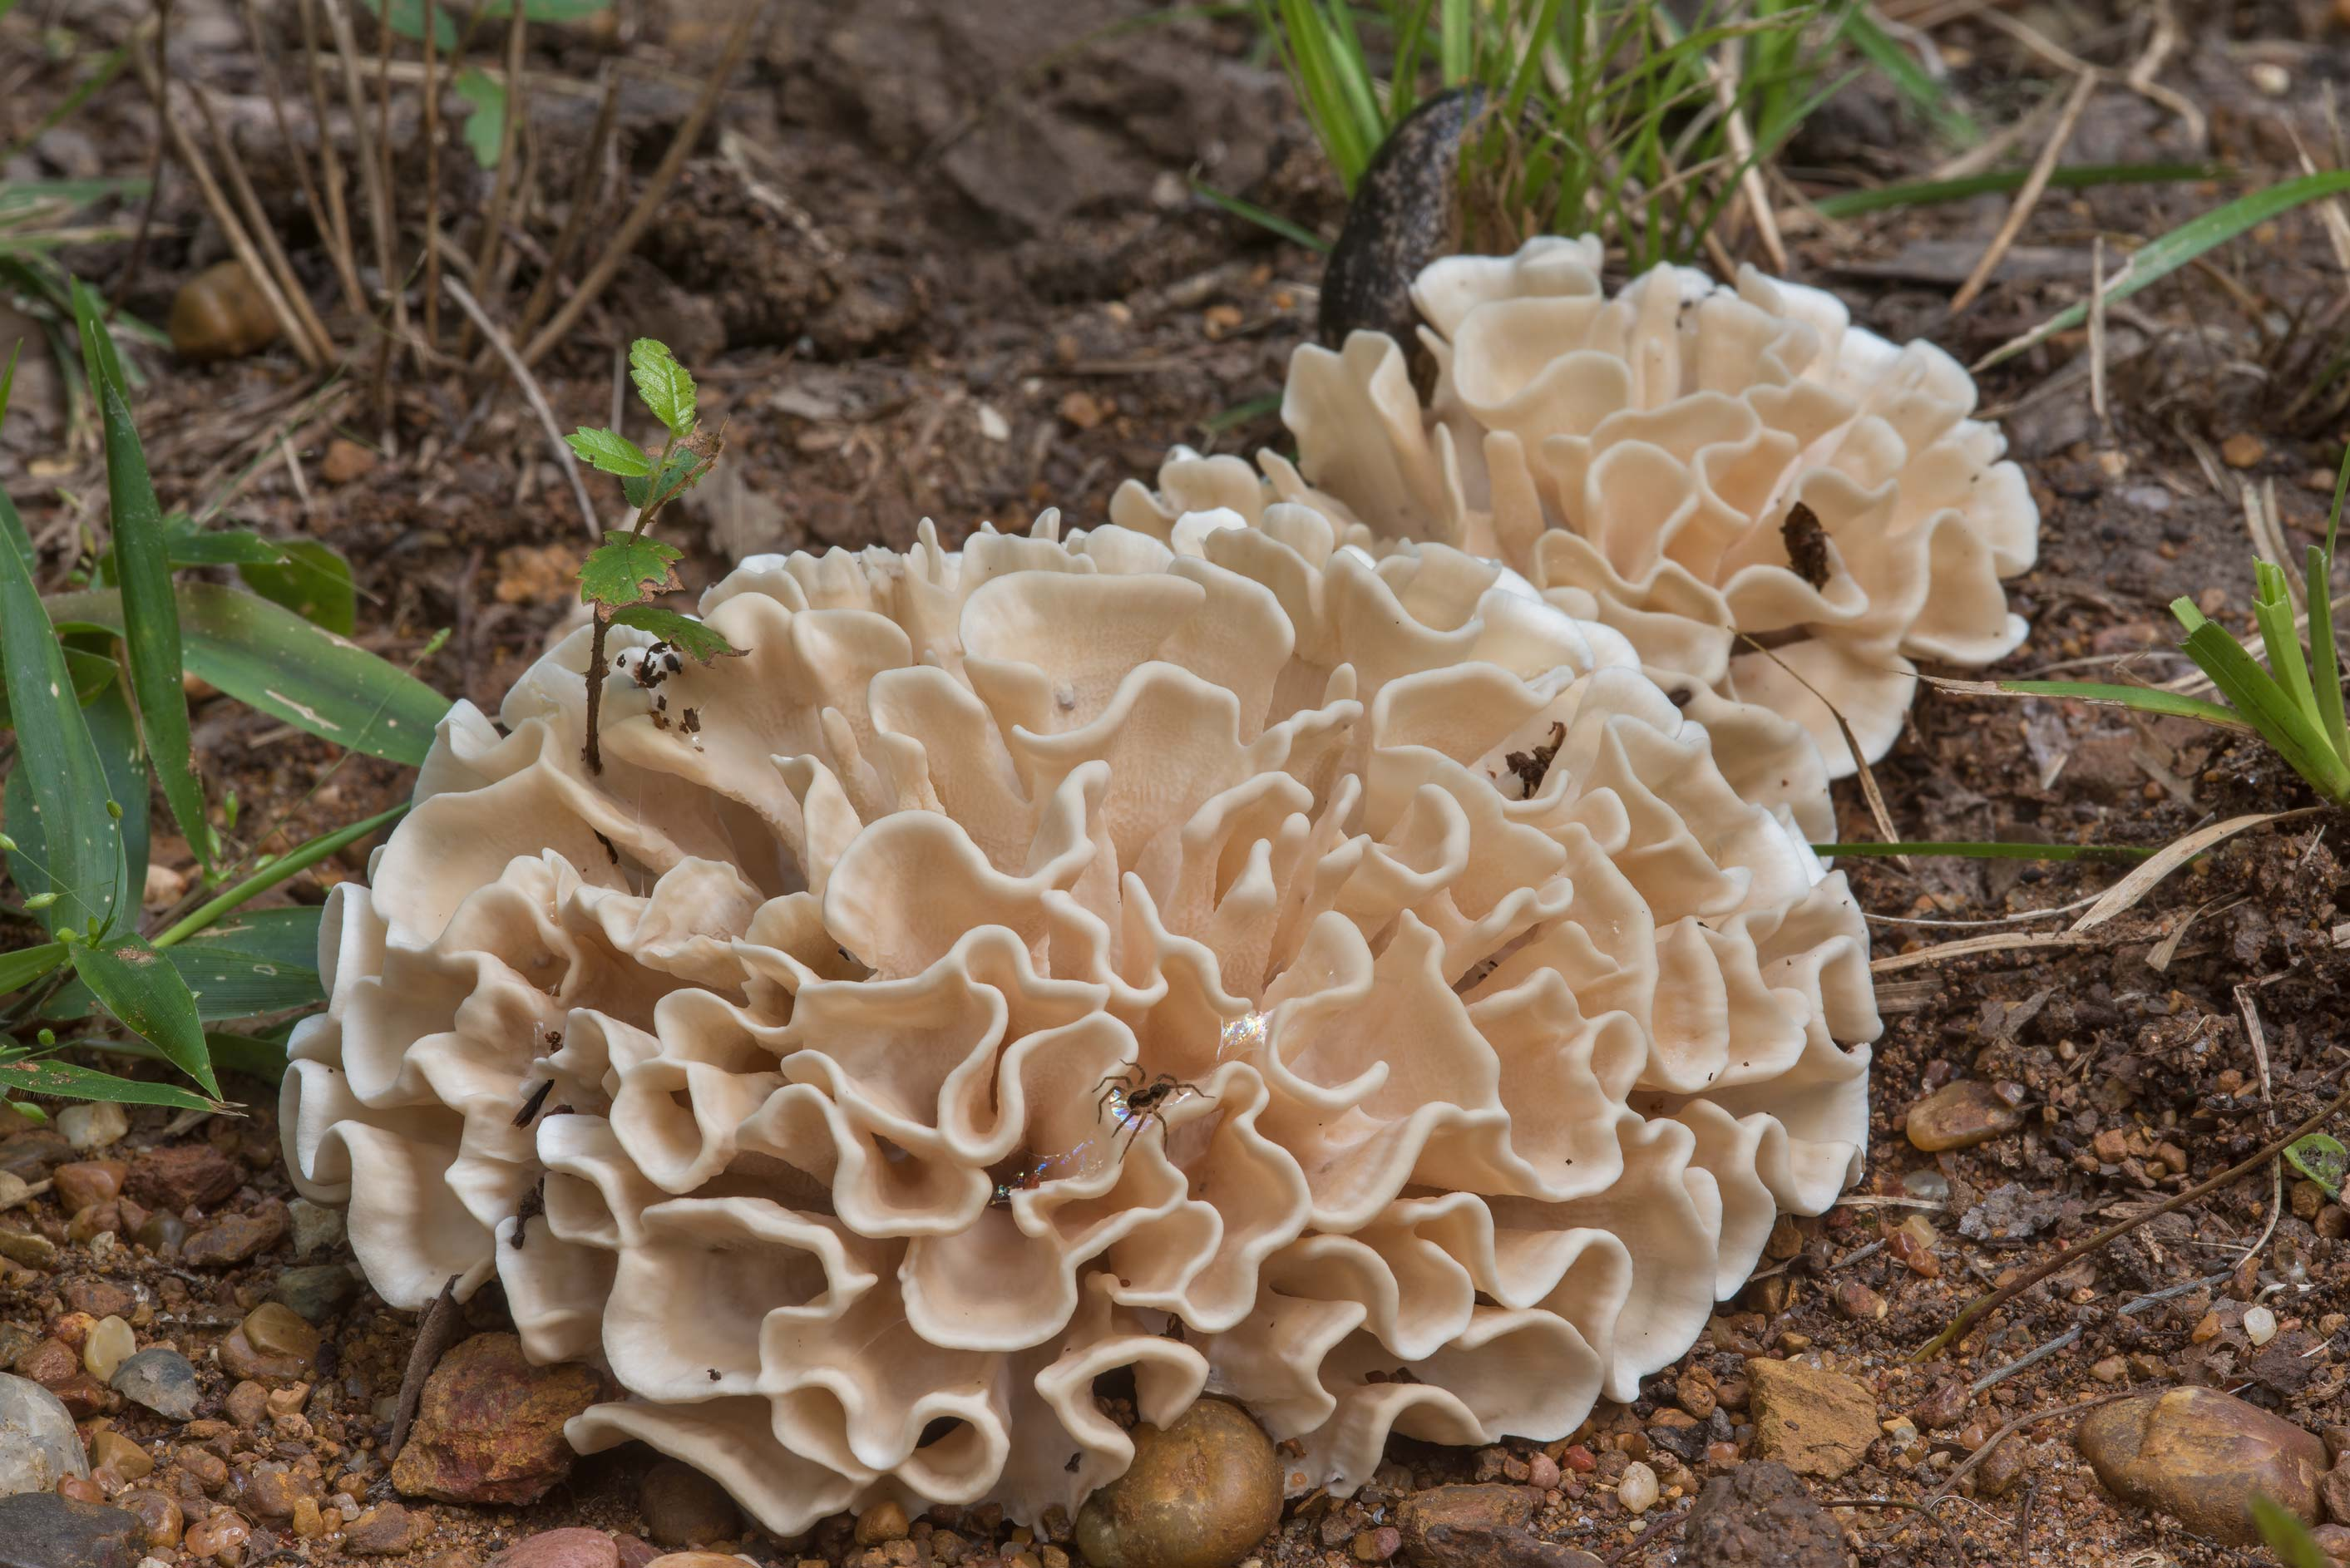 Side view of Hydnopolyporus palmatus mushrooms on...Creek Park. College Station, Texas